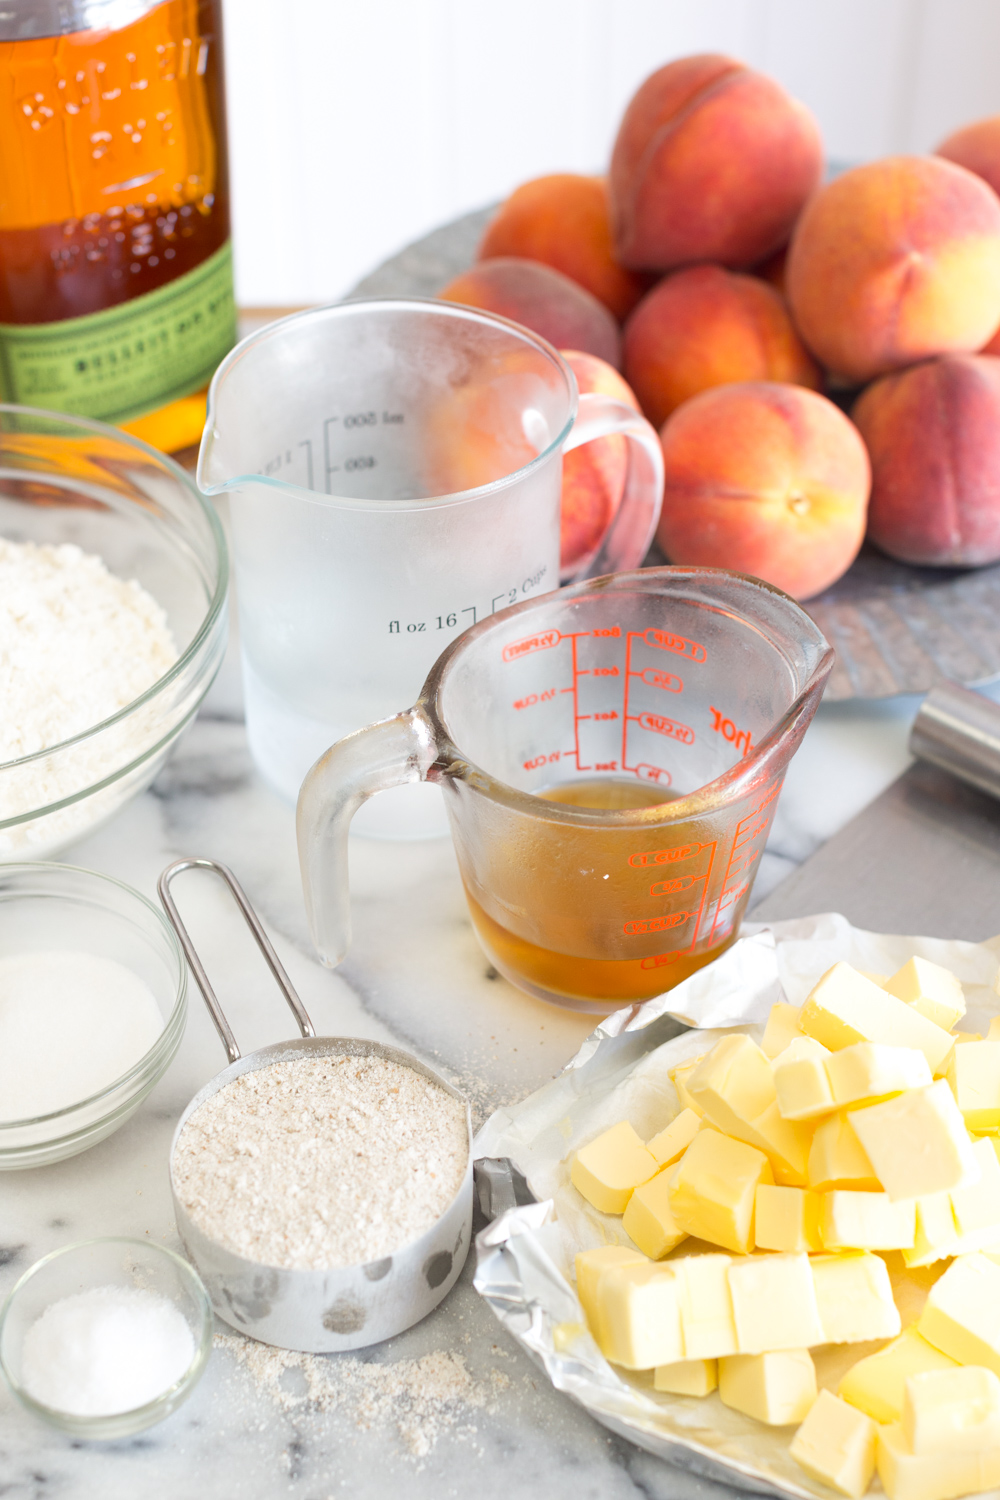 Ice cold ingredients for rye flour pie dough. Butter, rye whiskey, rye flour, peaches.